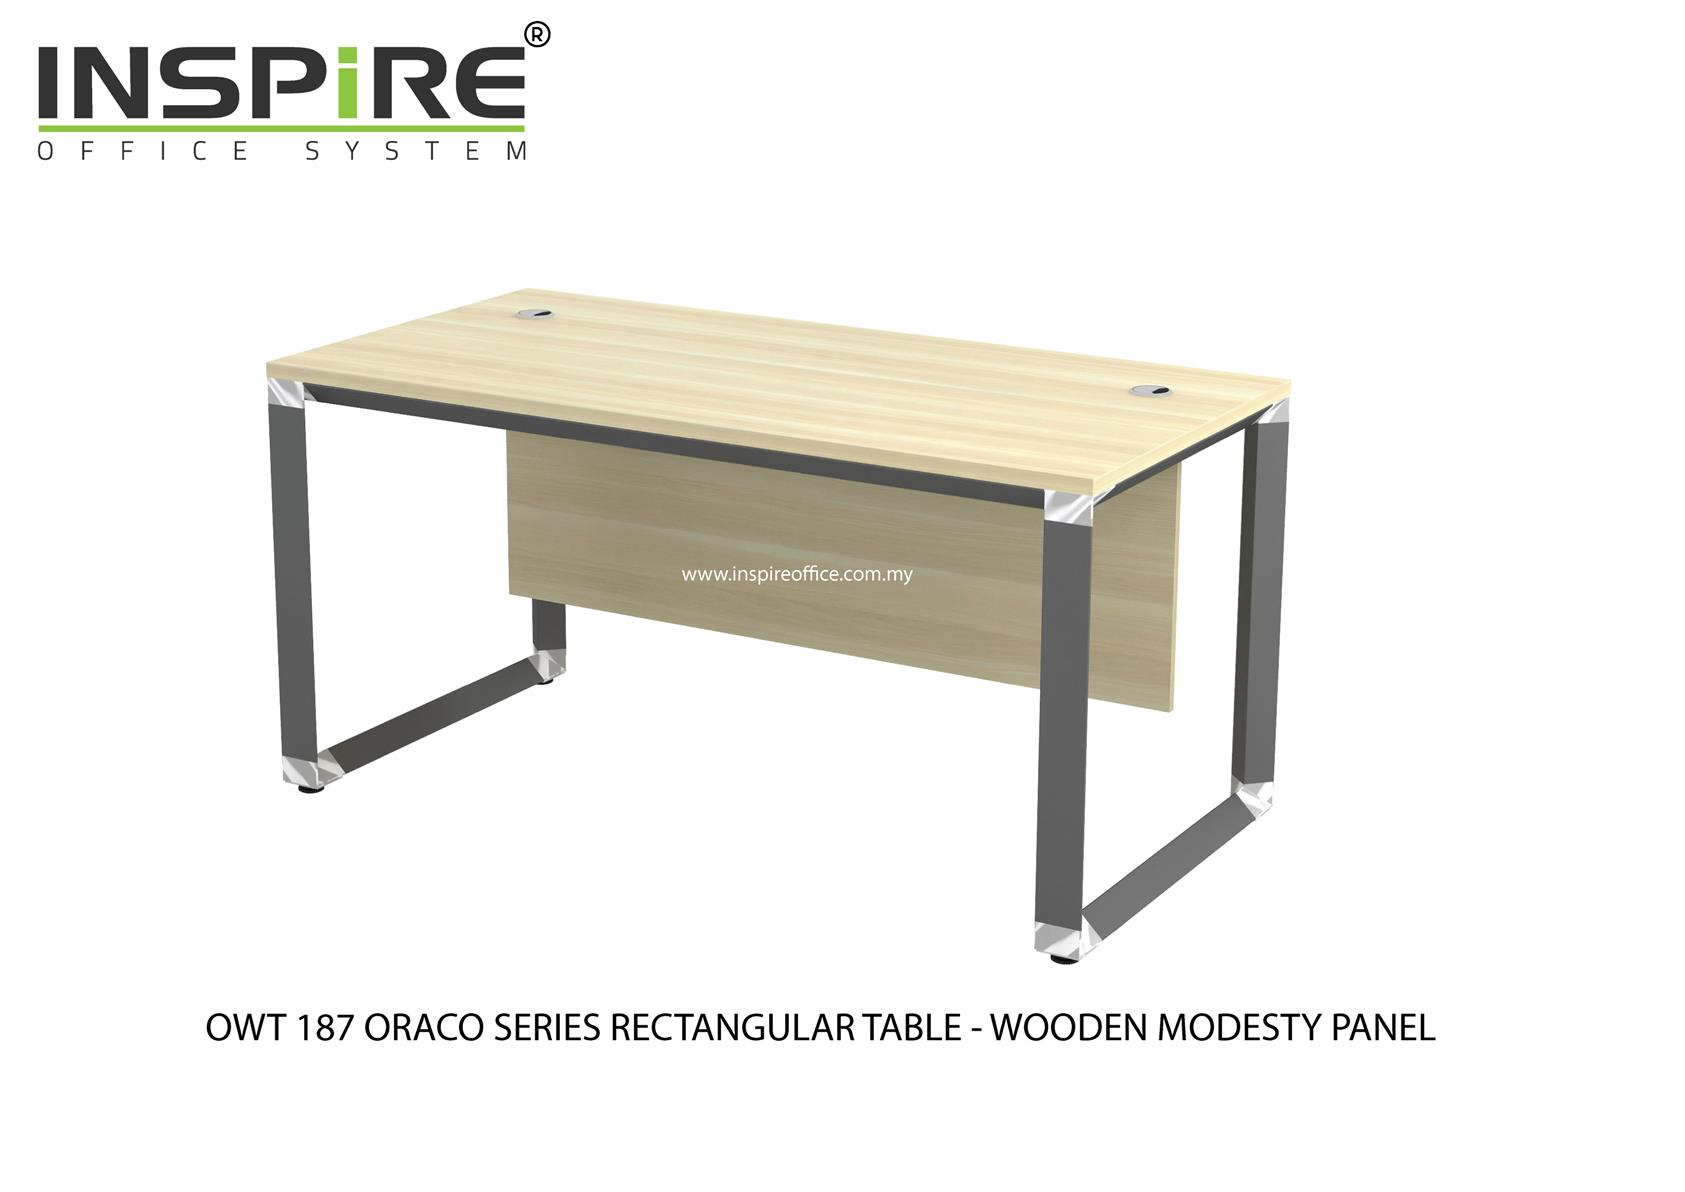 OWT 187 ORACO SERIES RECTANGULAR TABLE-WOODEN MODESTY PANEL